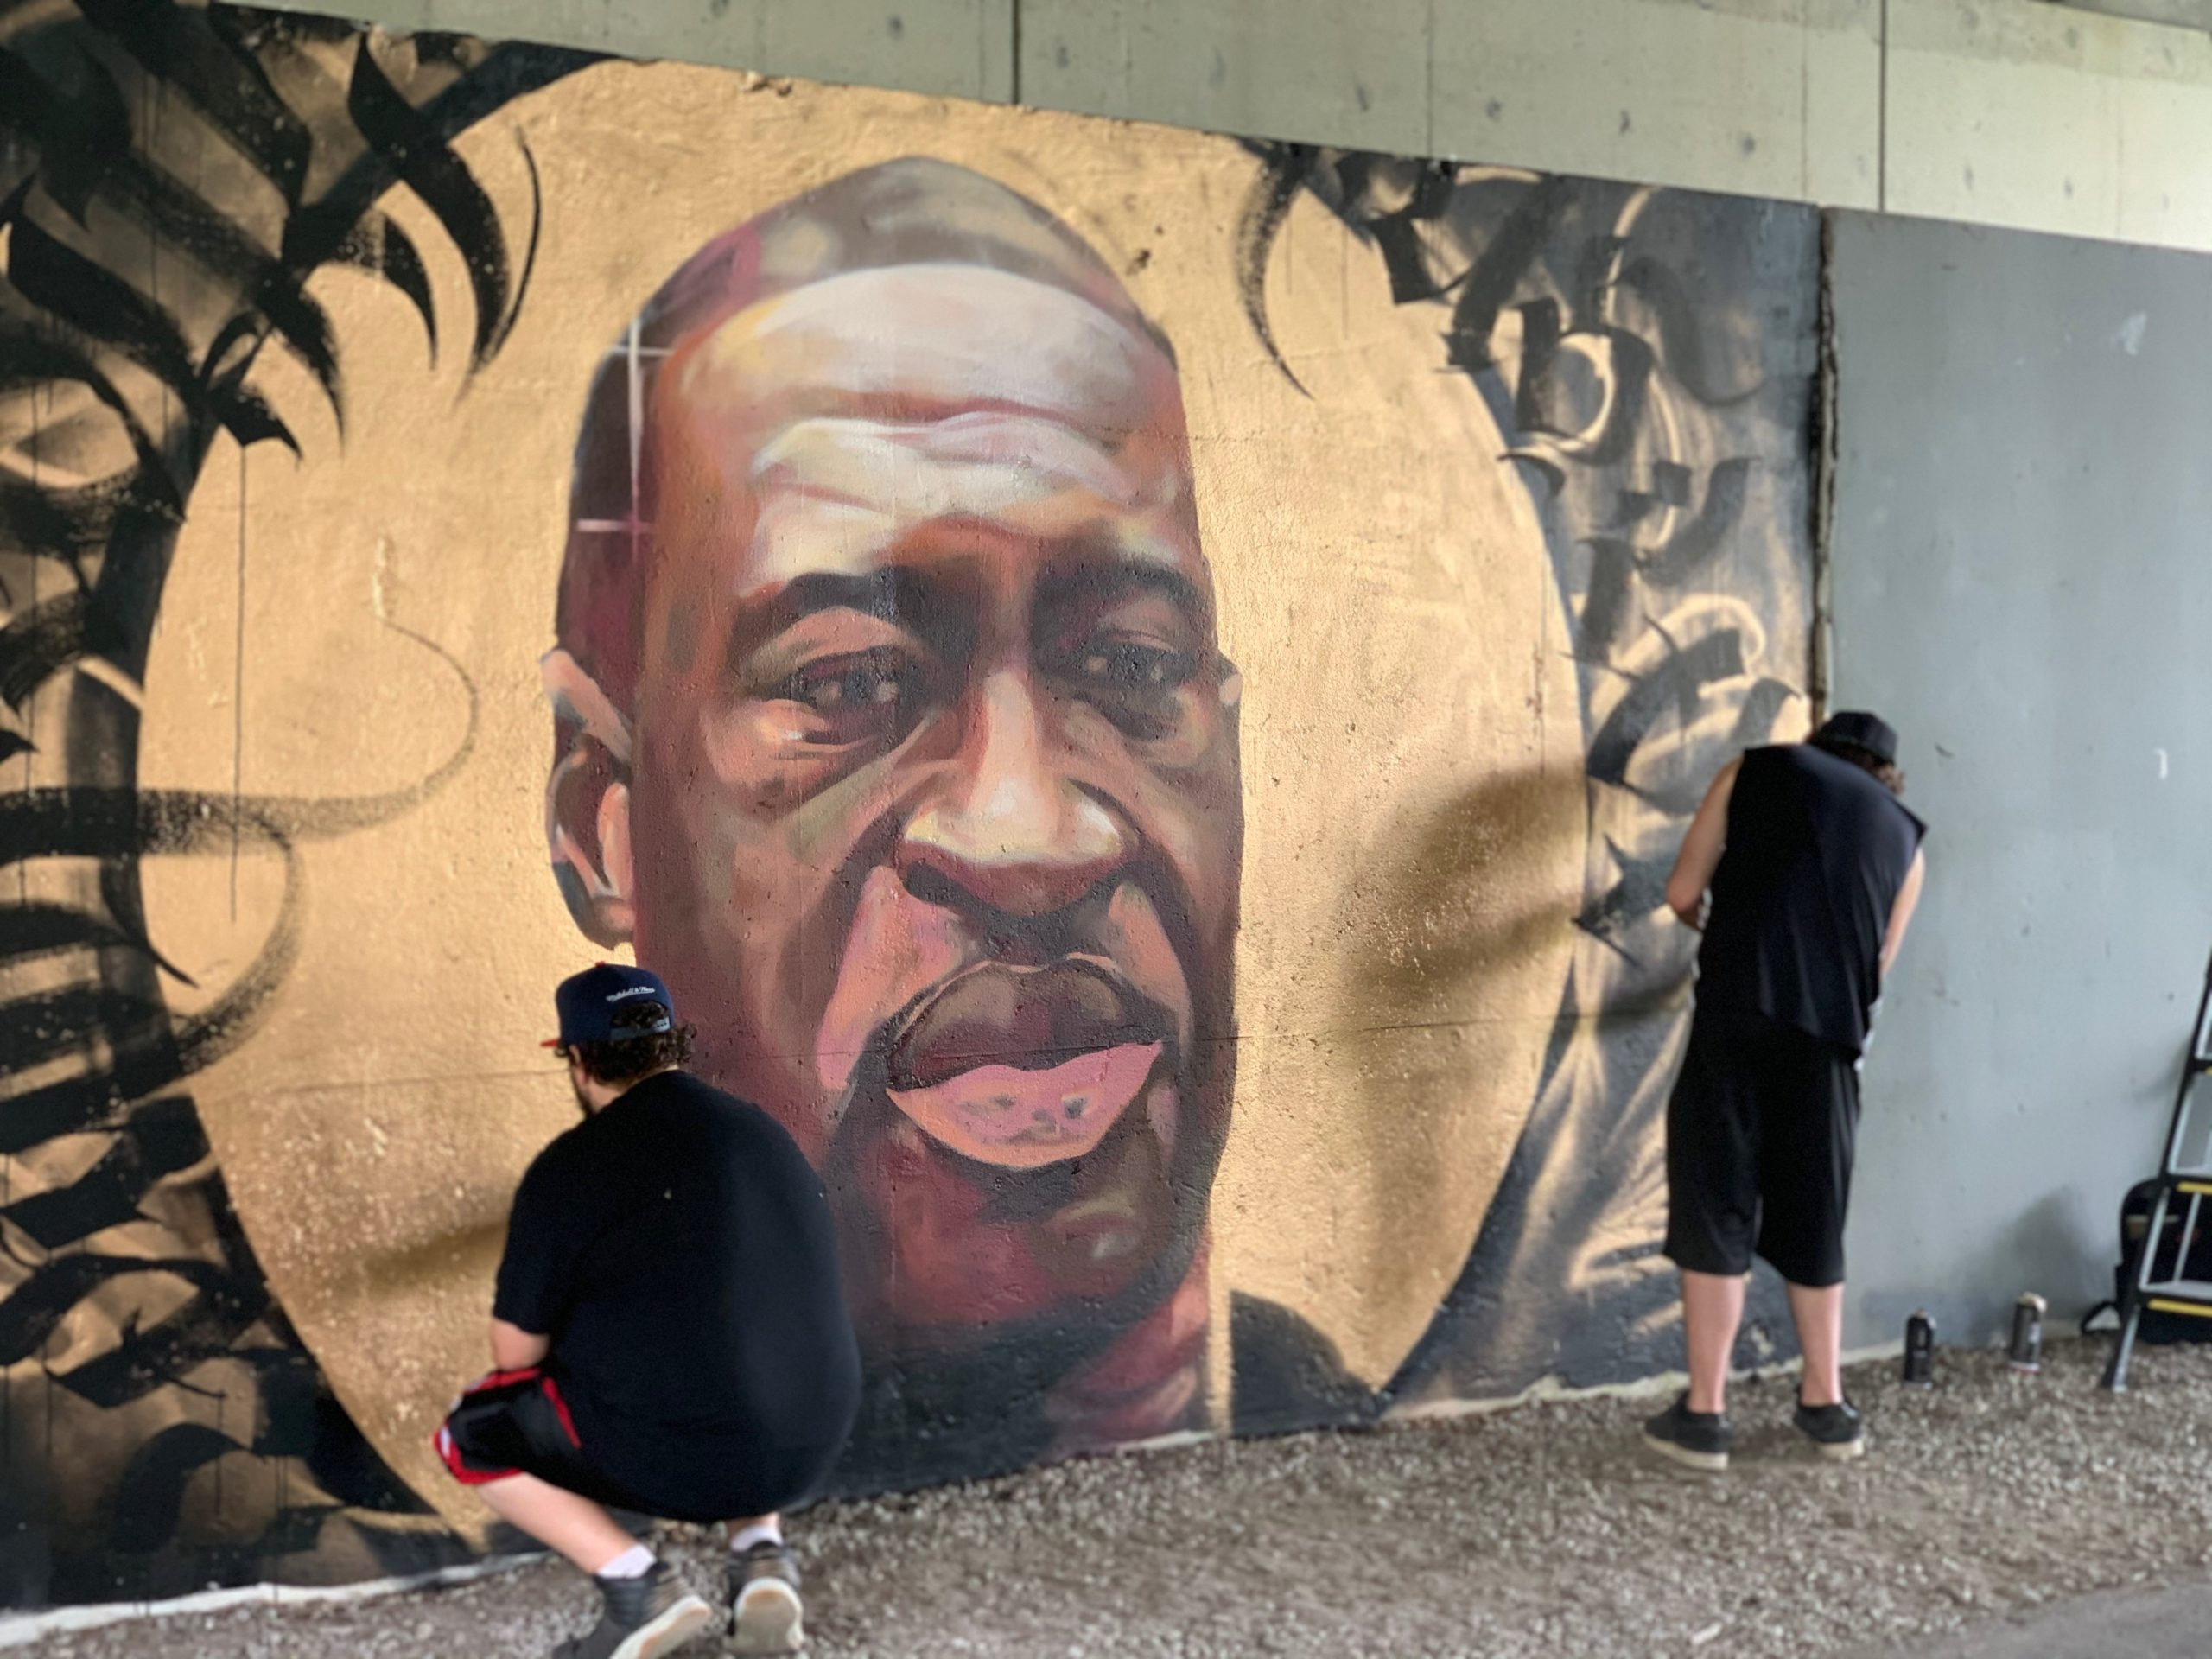 Artist Erik Phelps created the lettering on the mural that Isiah Lattimore painted.